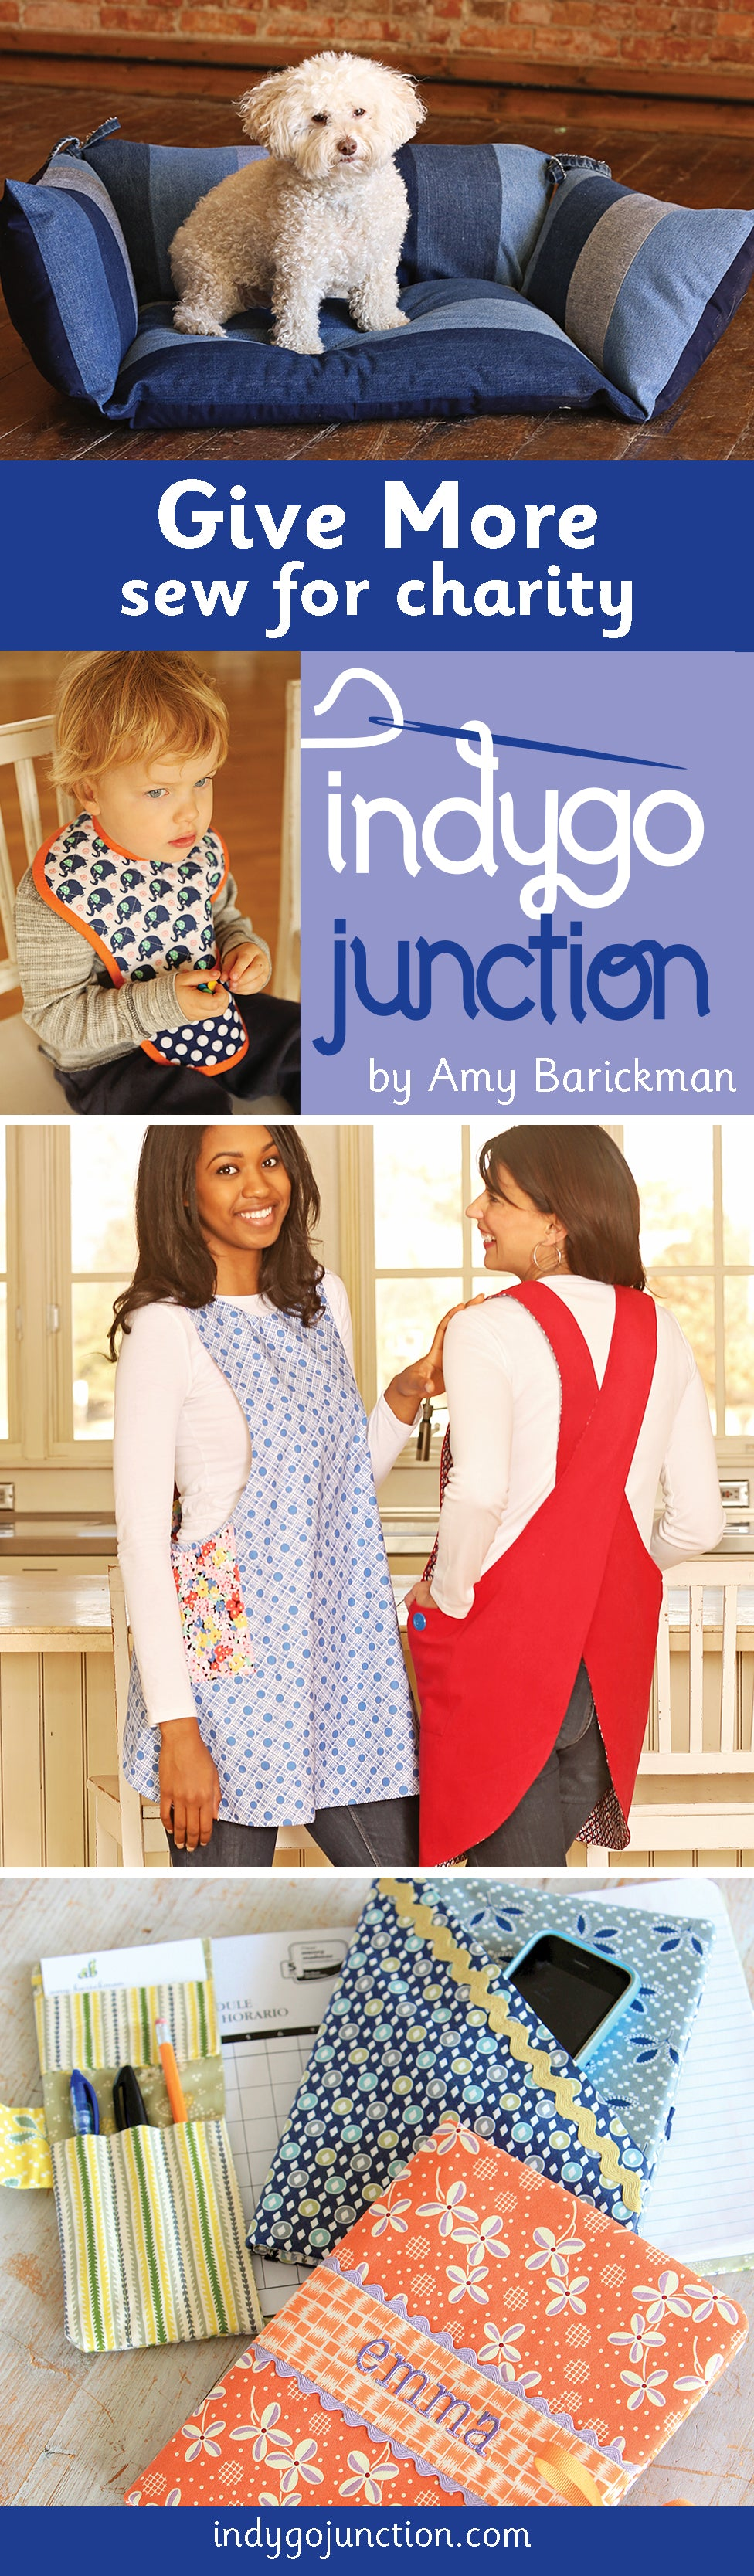 Ideas from Indygo Junction for sewing patterns perfect to make and donate to different non-profit organizations.